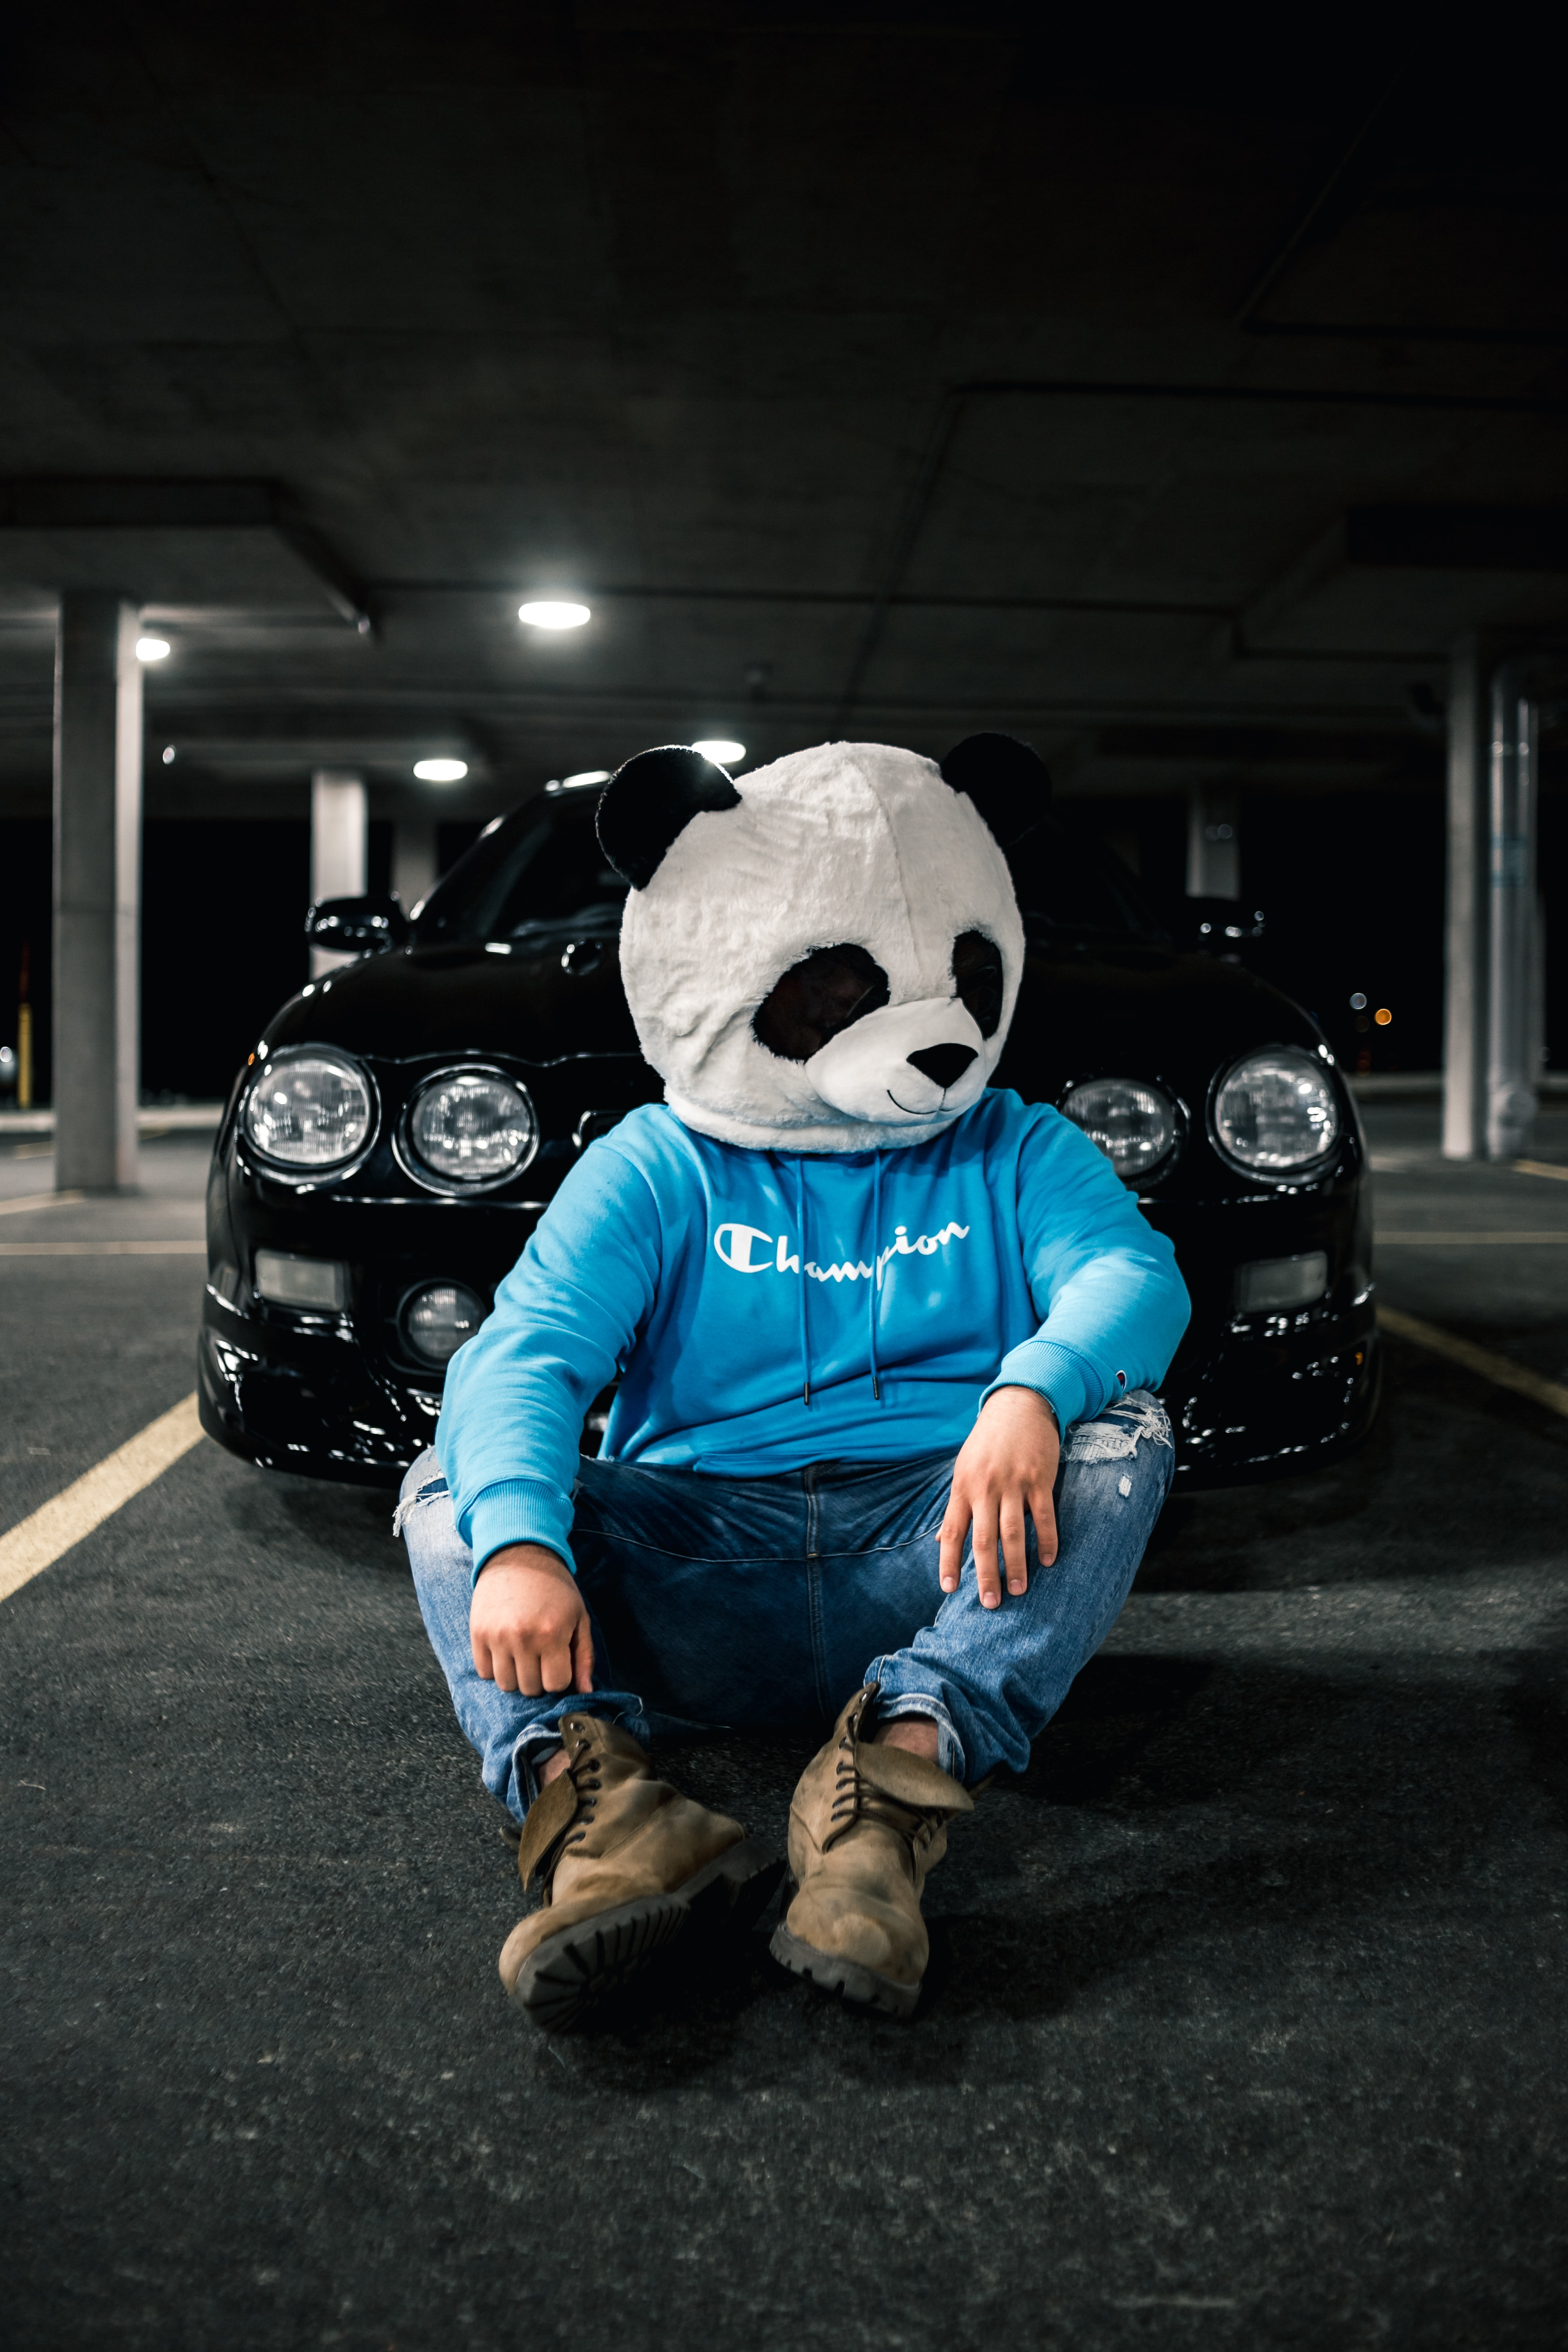 149089 download wallpaper Miscellanea, Miscellaneous, Human, Person, Mask, Panda, Car screensavers and pictures for free